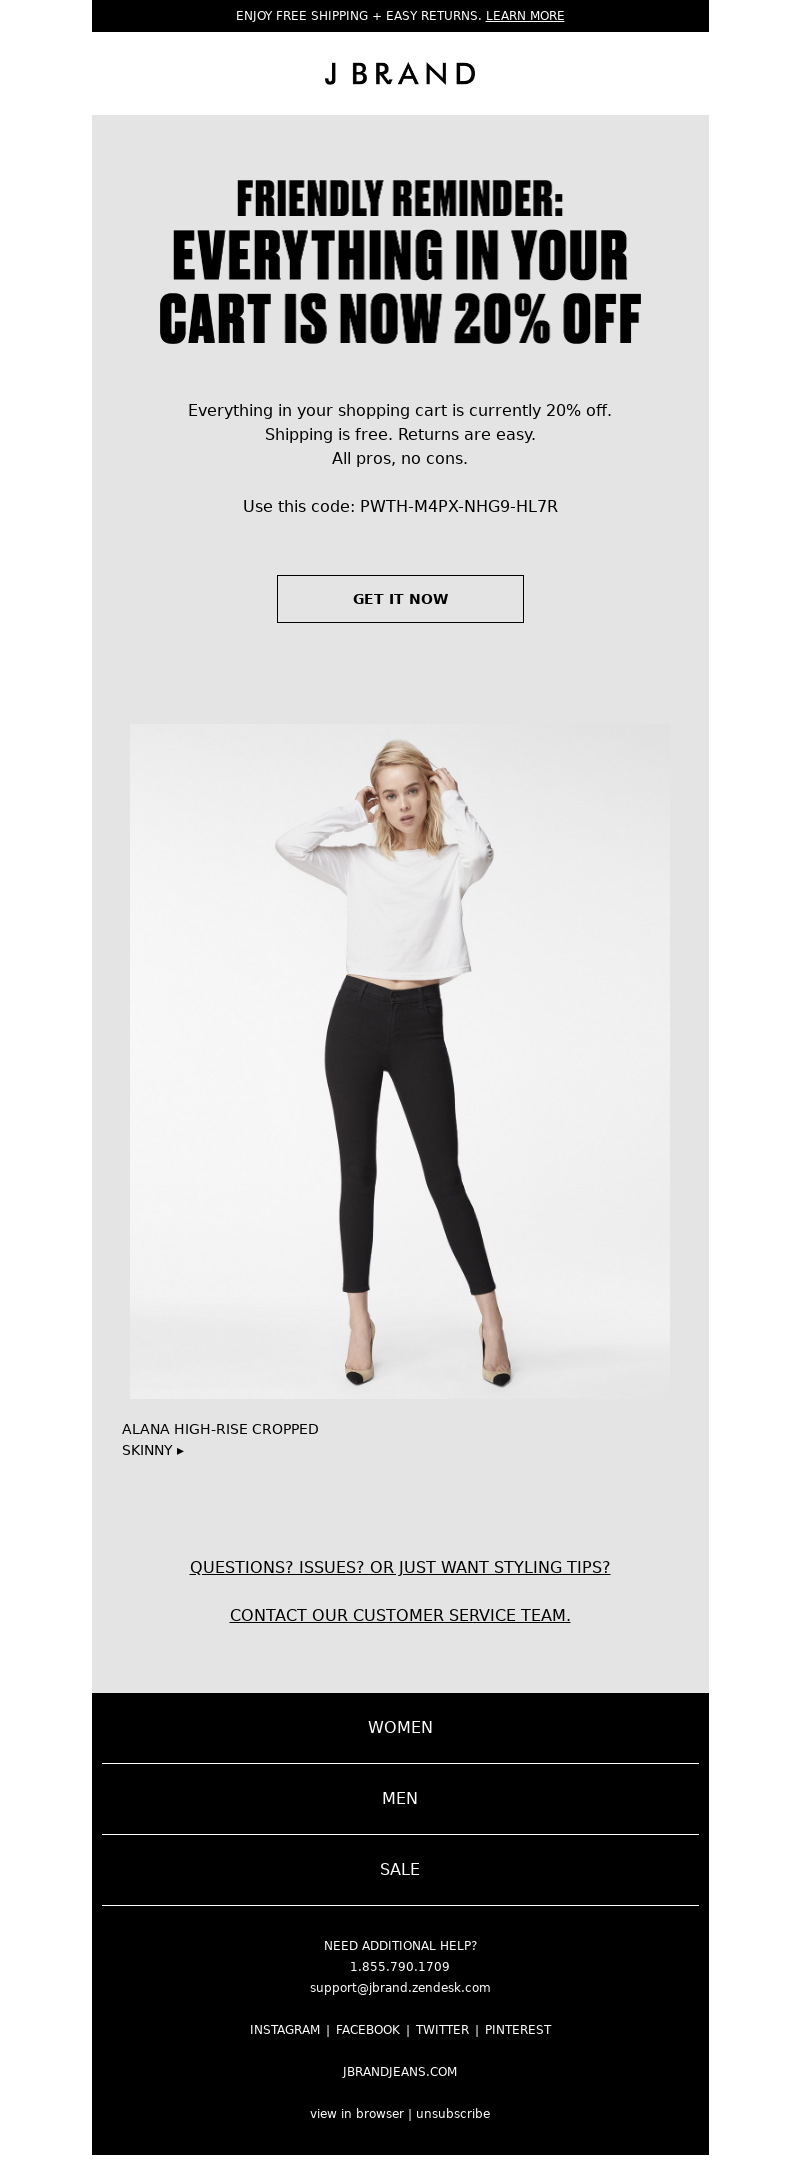 J BRAND - You Get 20% Off Everything In Your Cart NOW